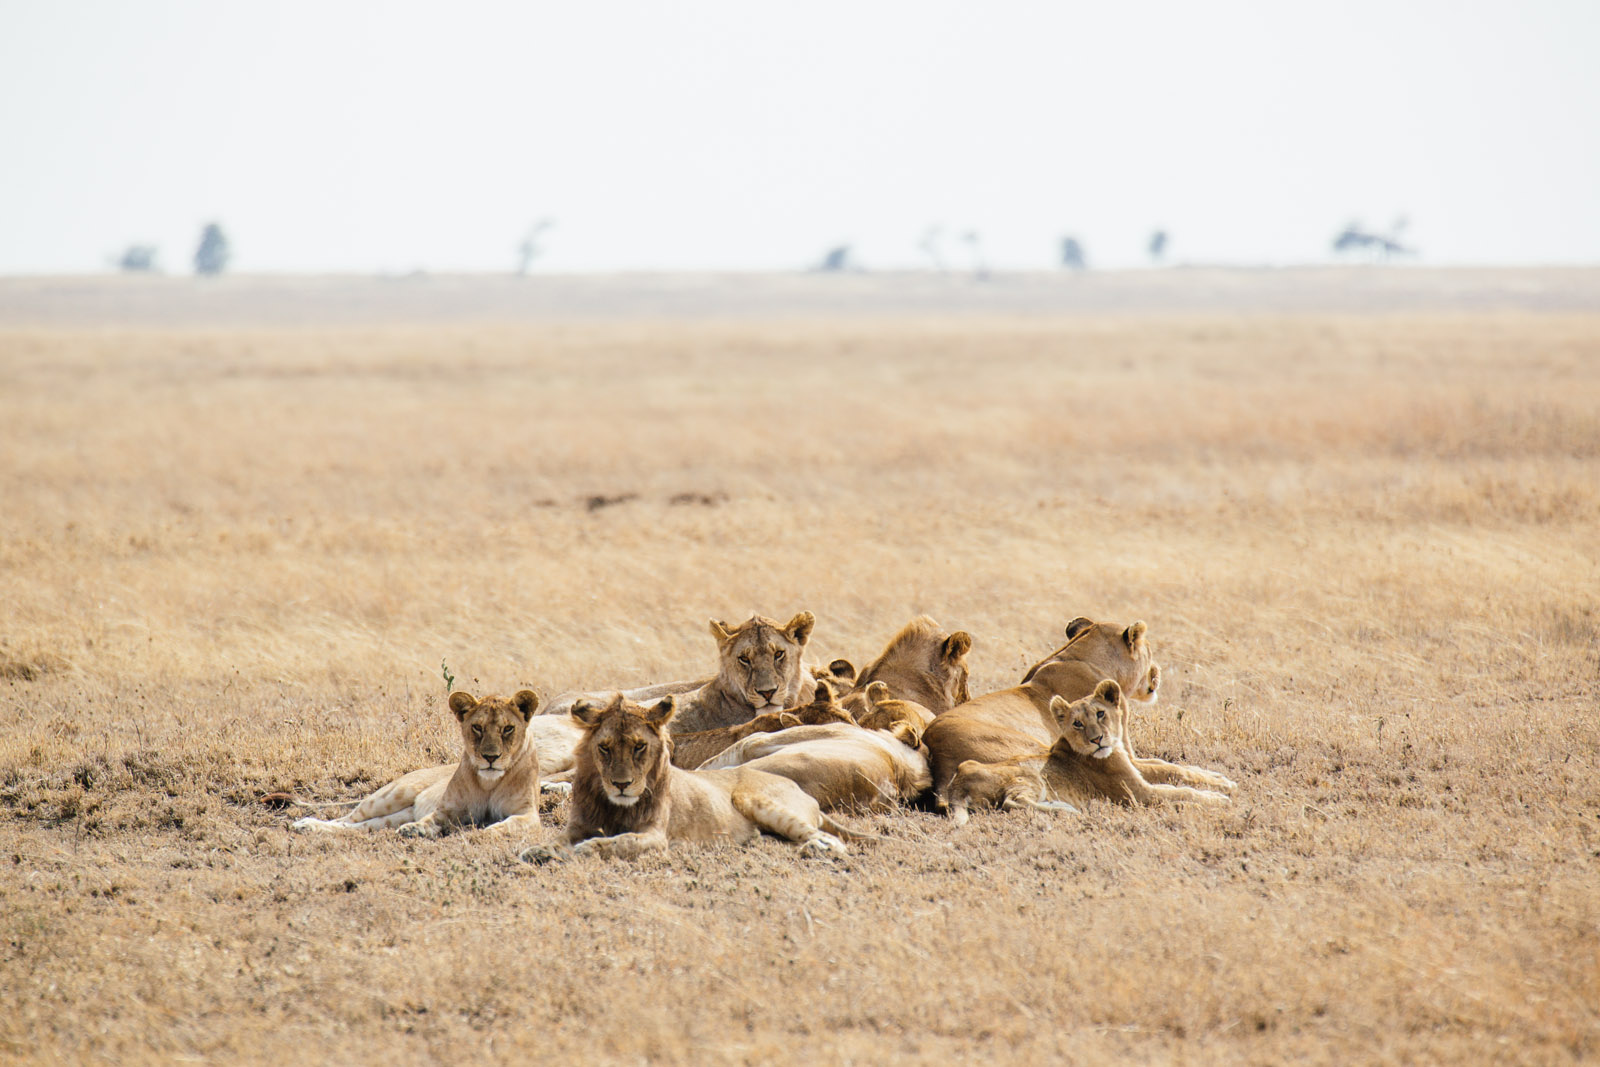 A pride of lions sits in the short, dry grassland of Serengeti National Park.